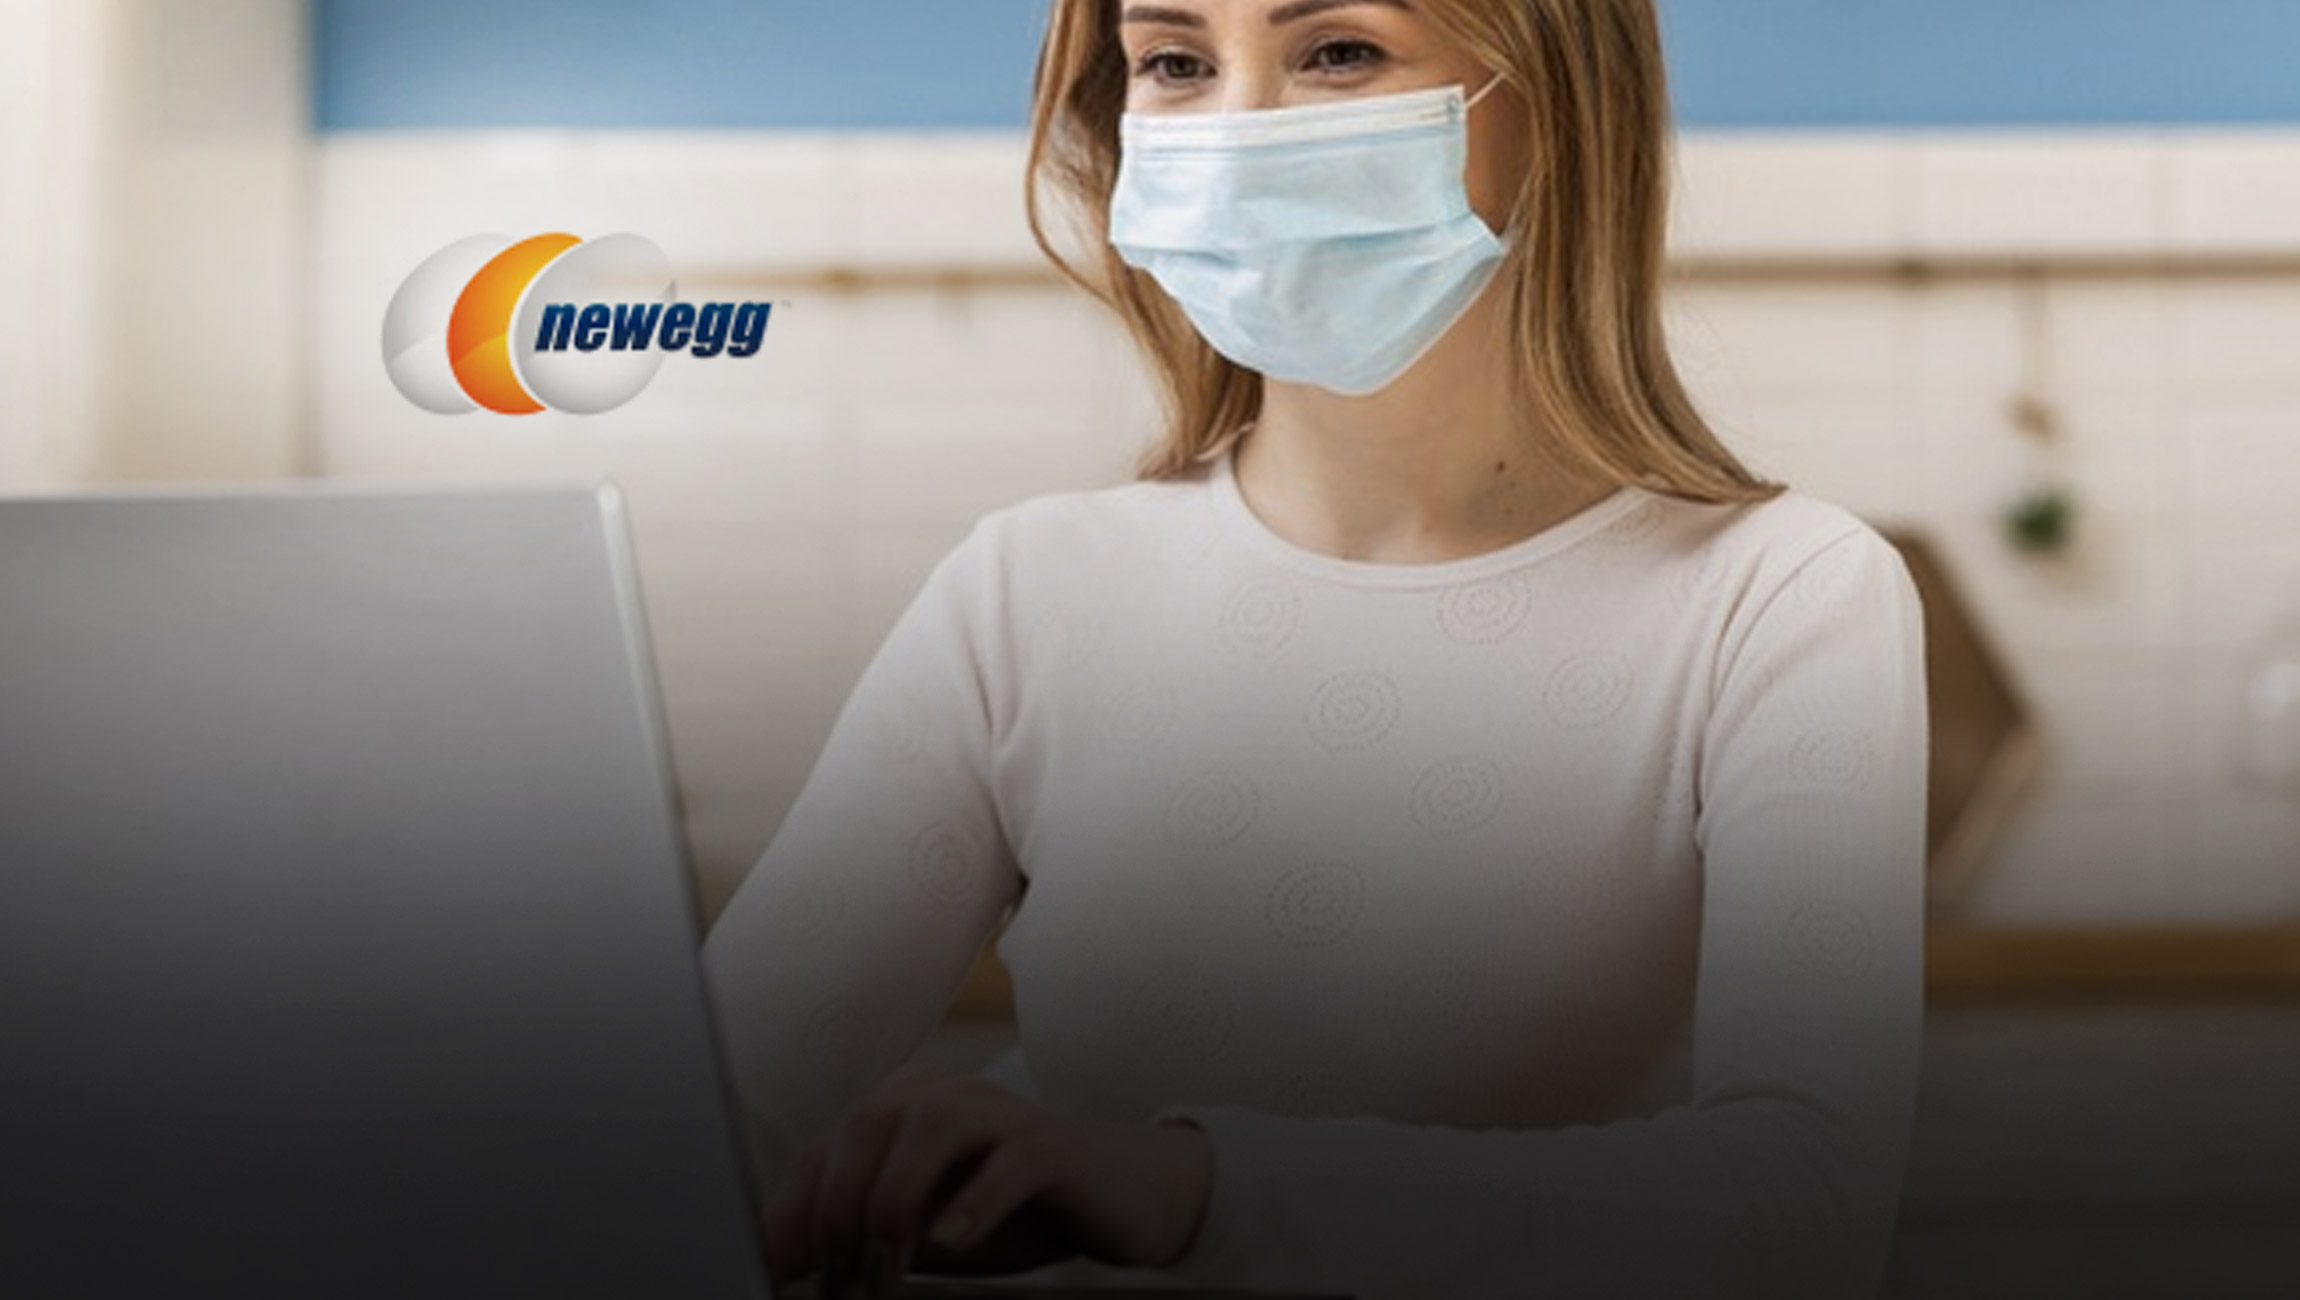 Newegg Grows Company's Presence in Southern California with Expansive New 3PL Facility